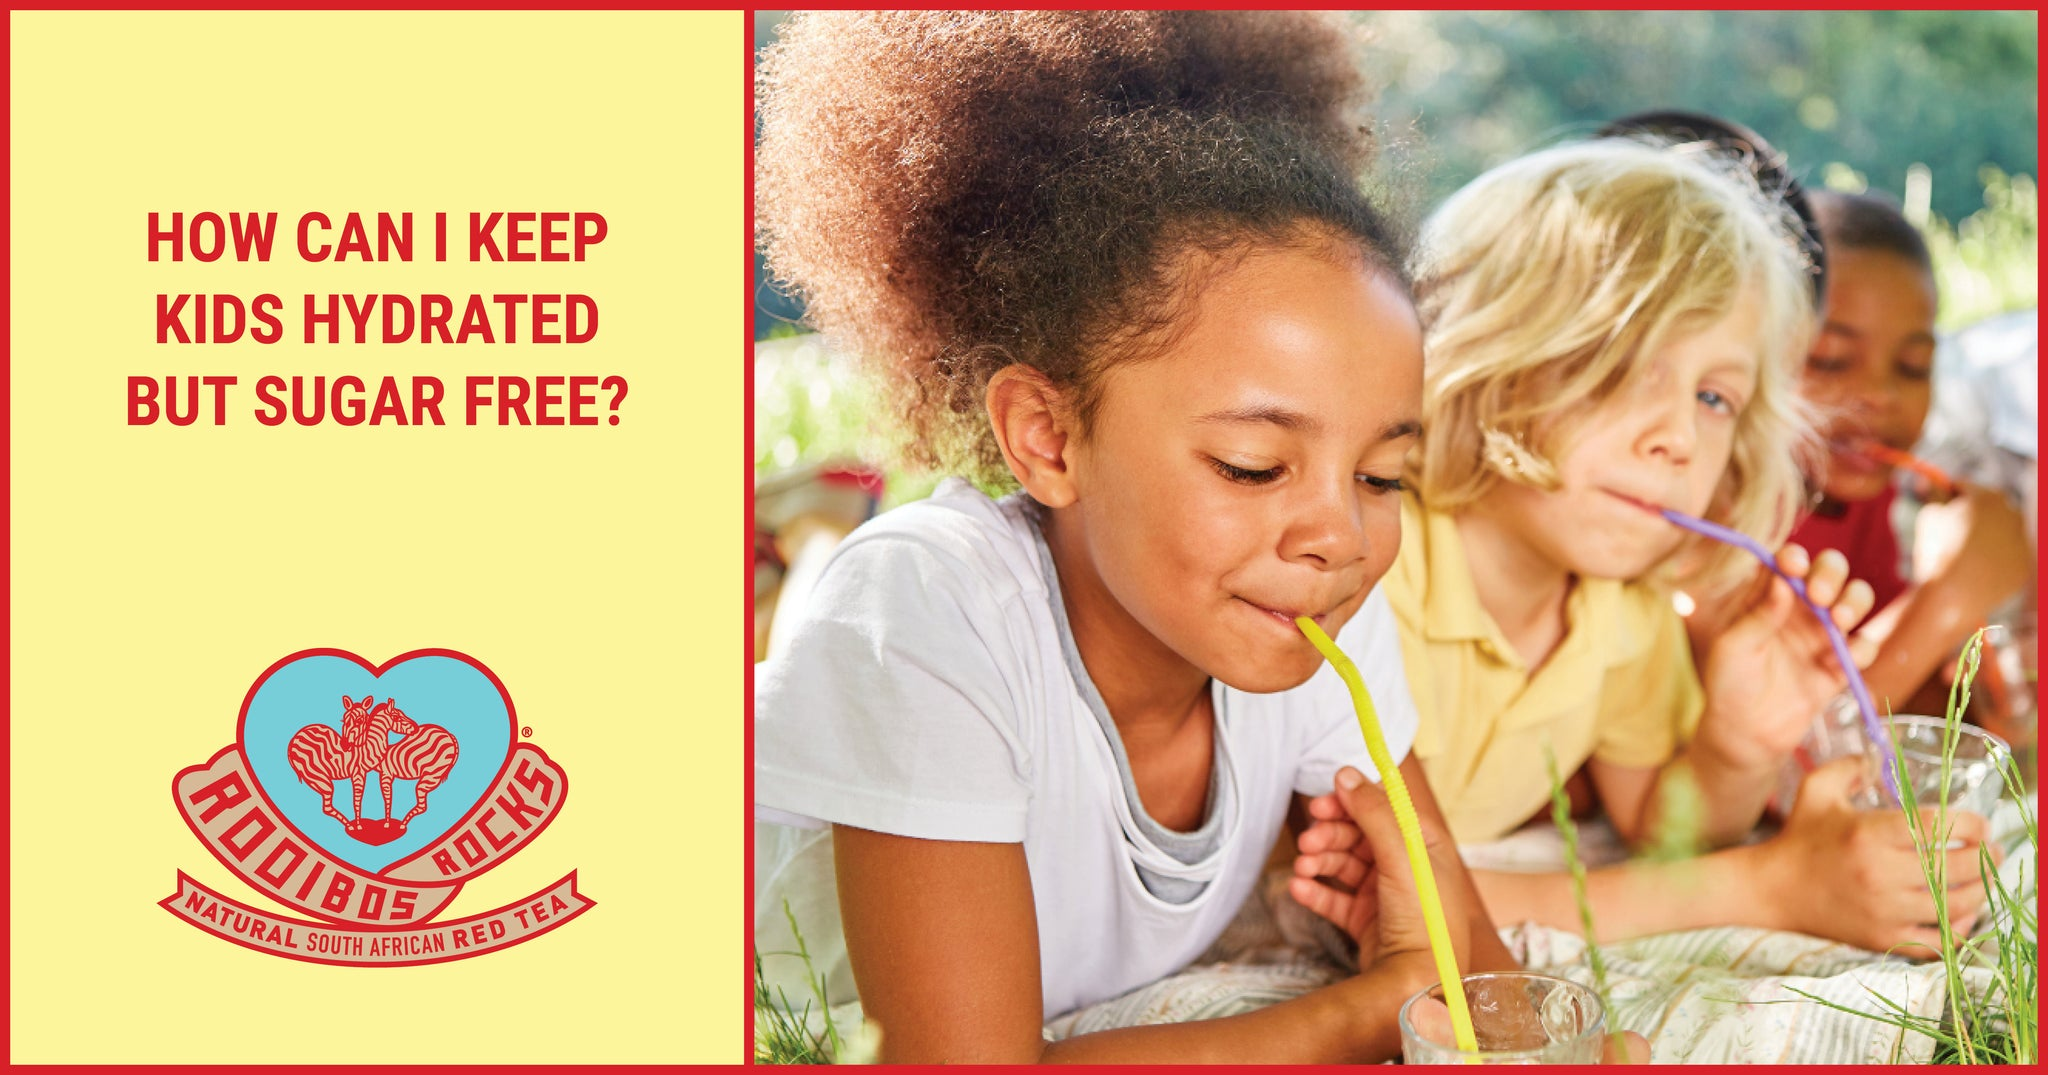 How can I keep kids hydrated but sugar free?